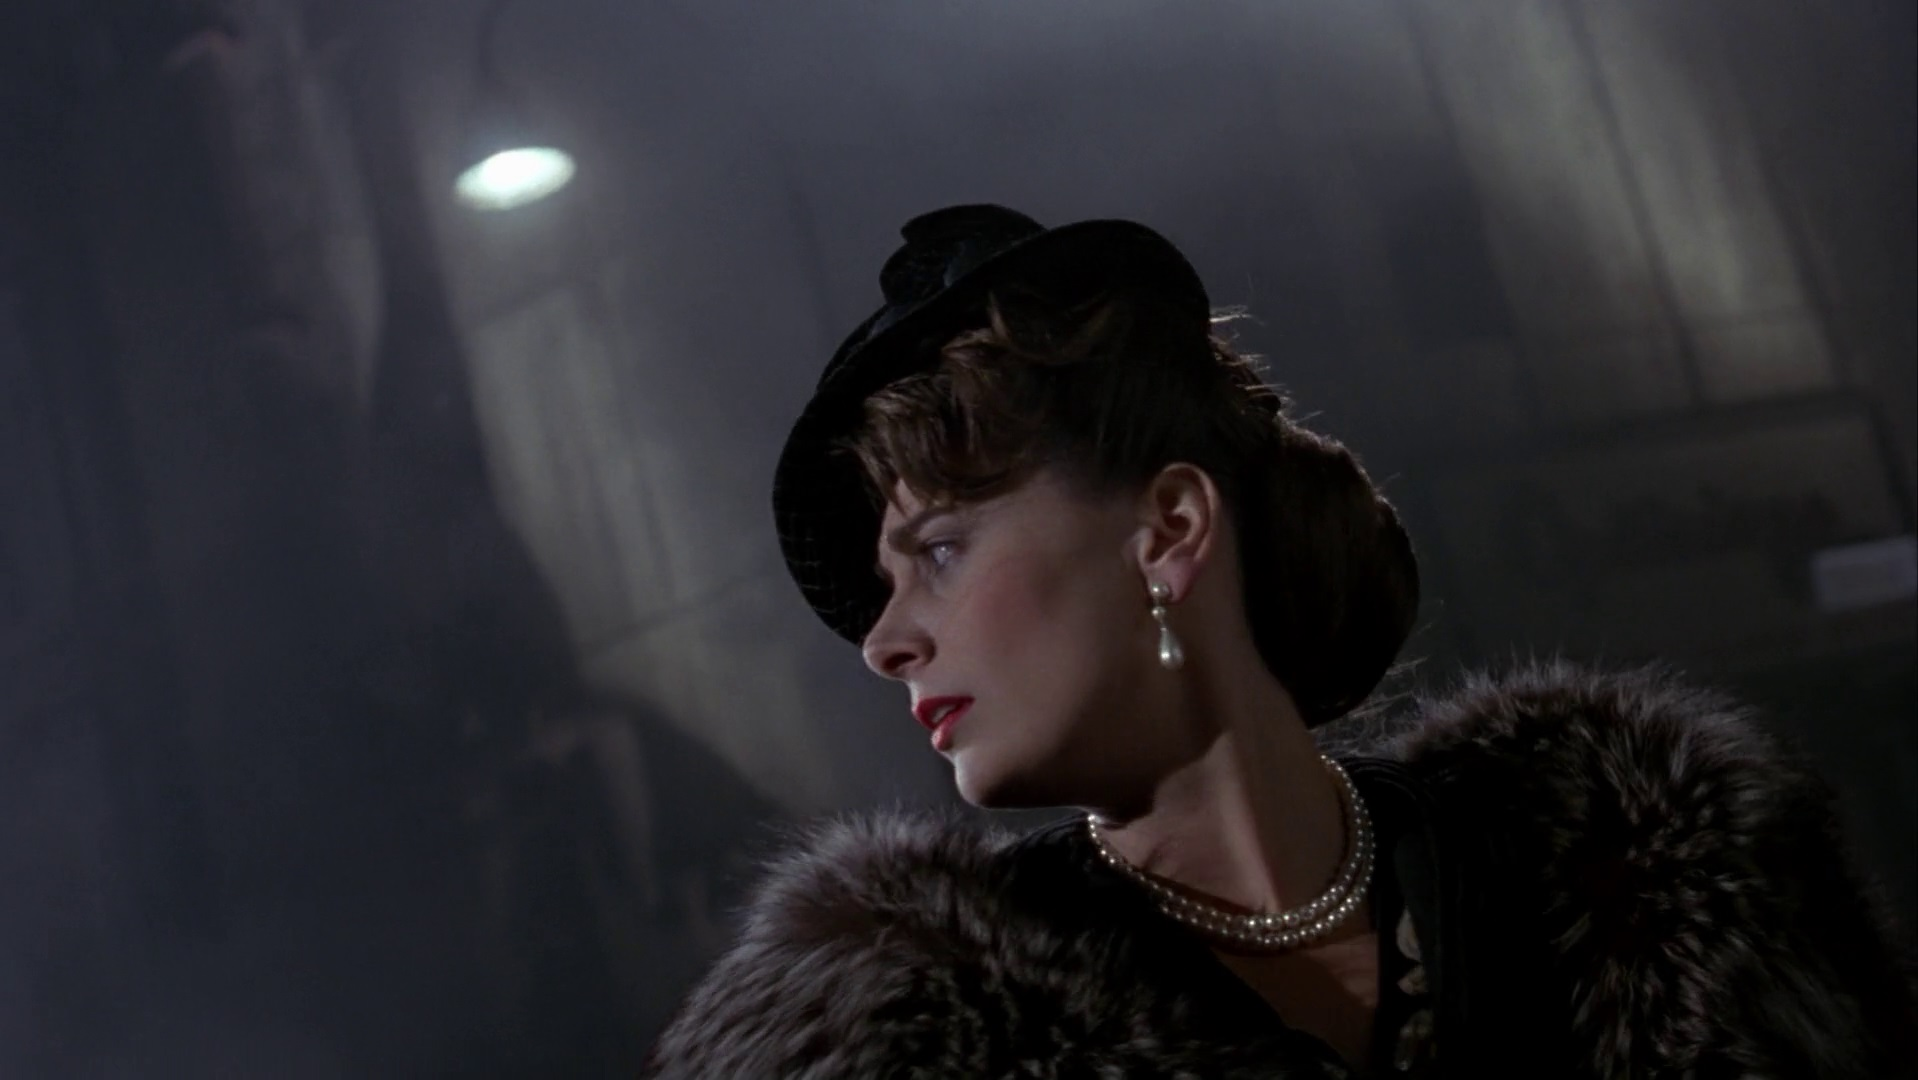 File:Batman 1989 - Martha Wayne.jpg